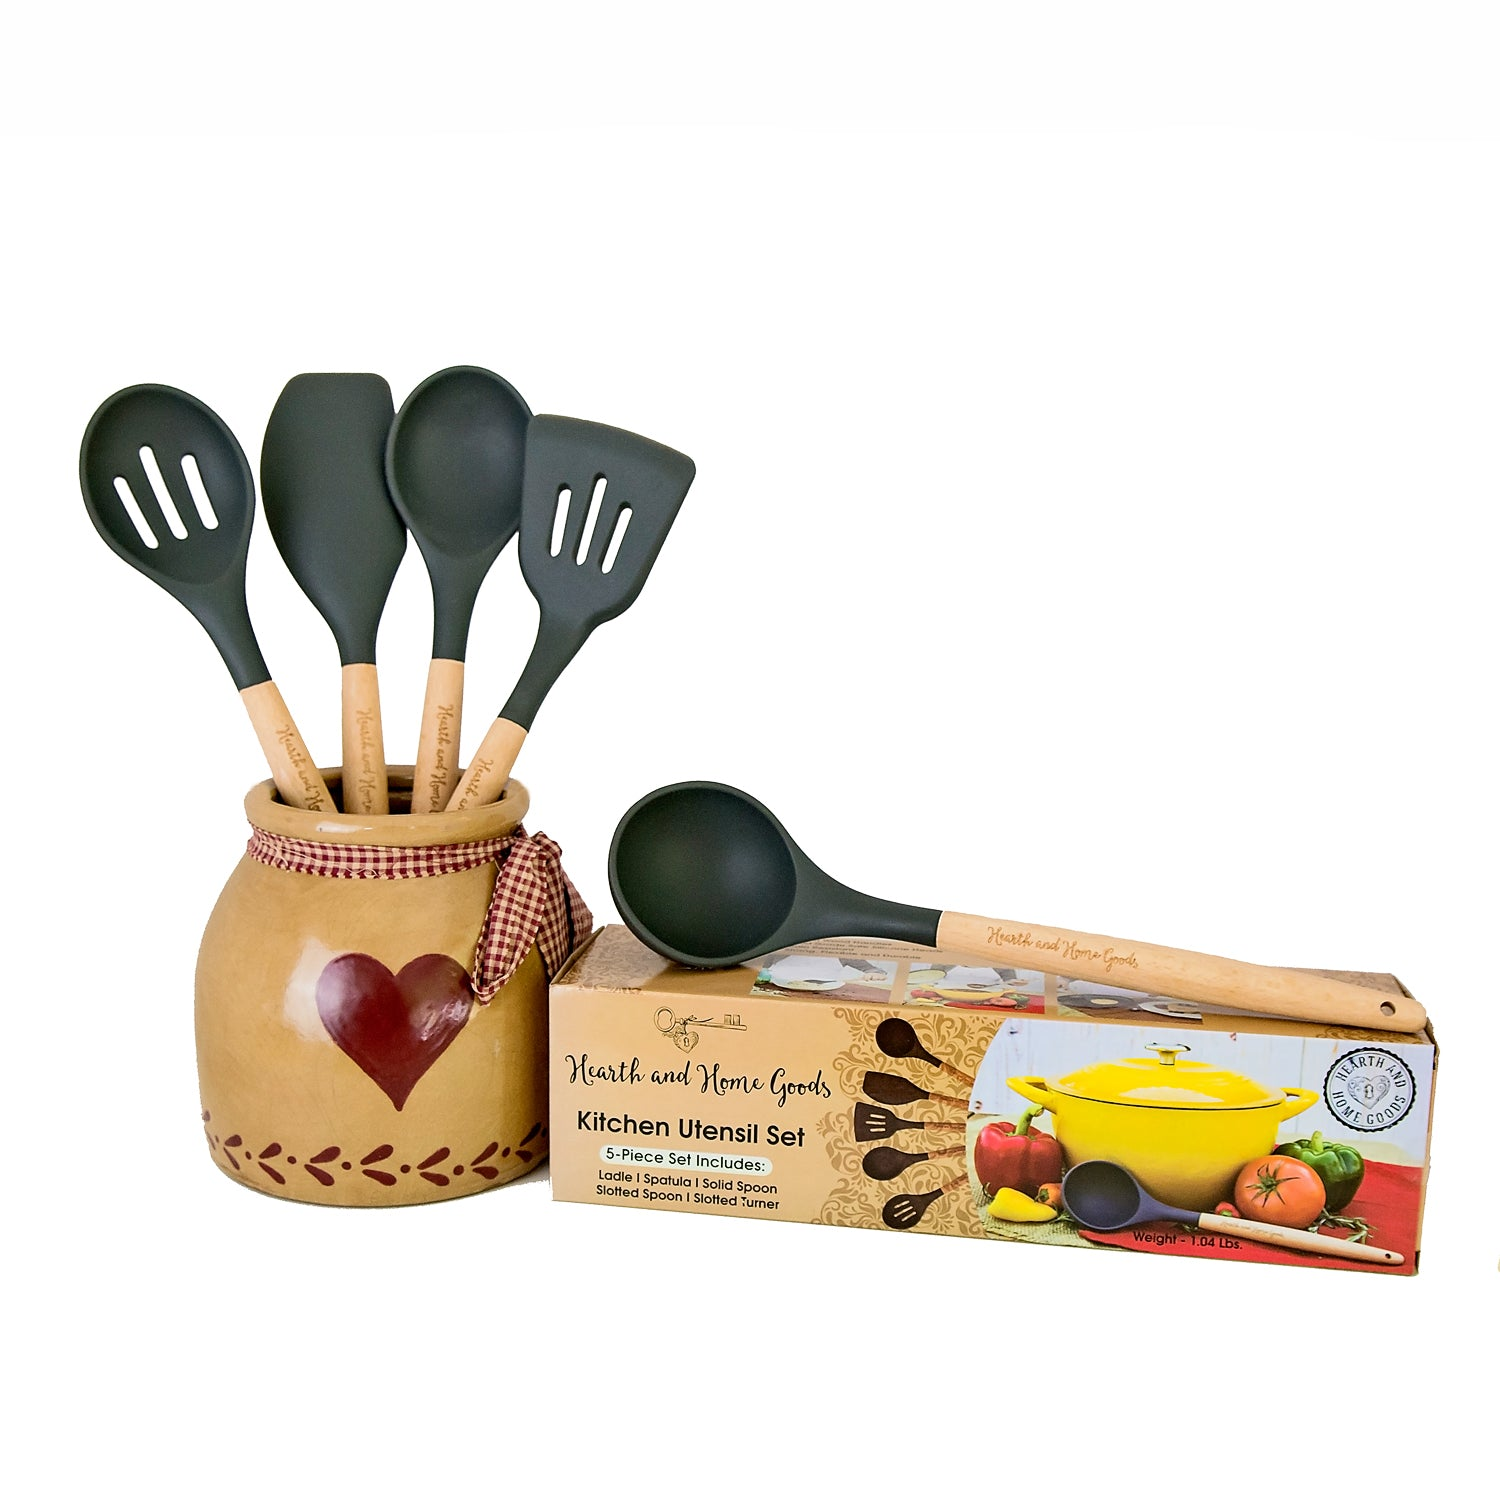 Kitchen Cooking Utensil Set - 5-Piece | Hearth and Home Goods